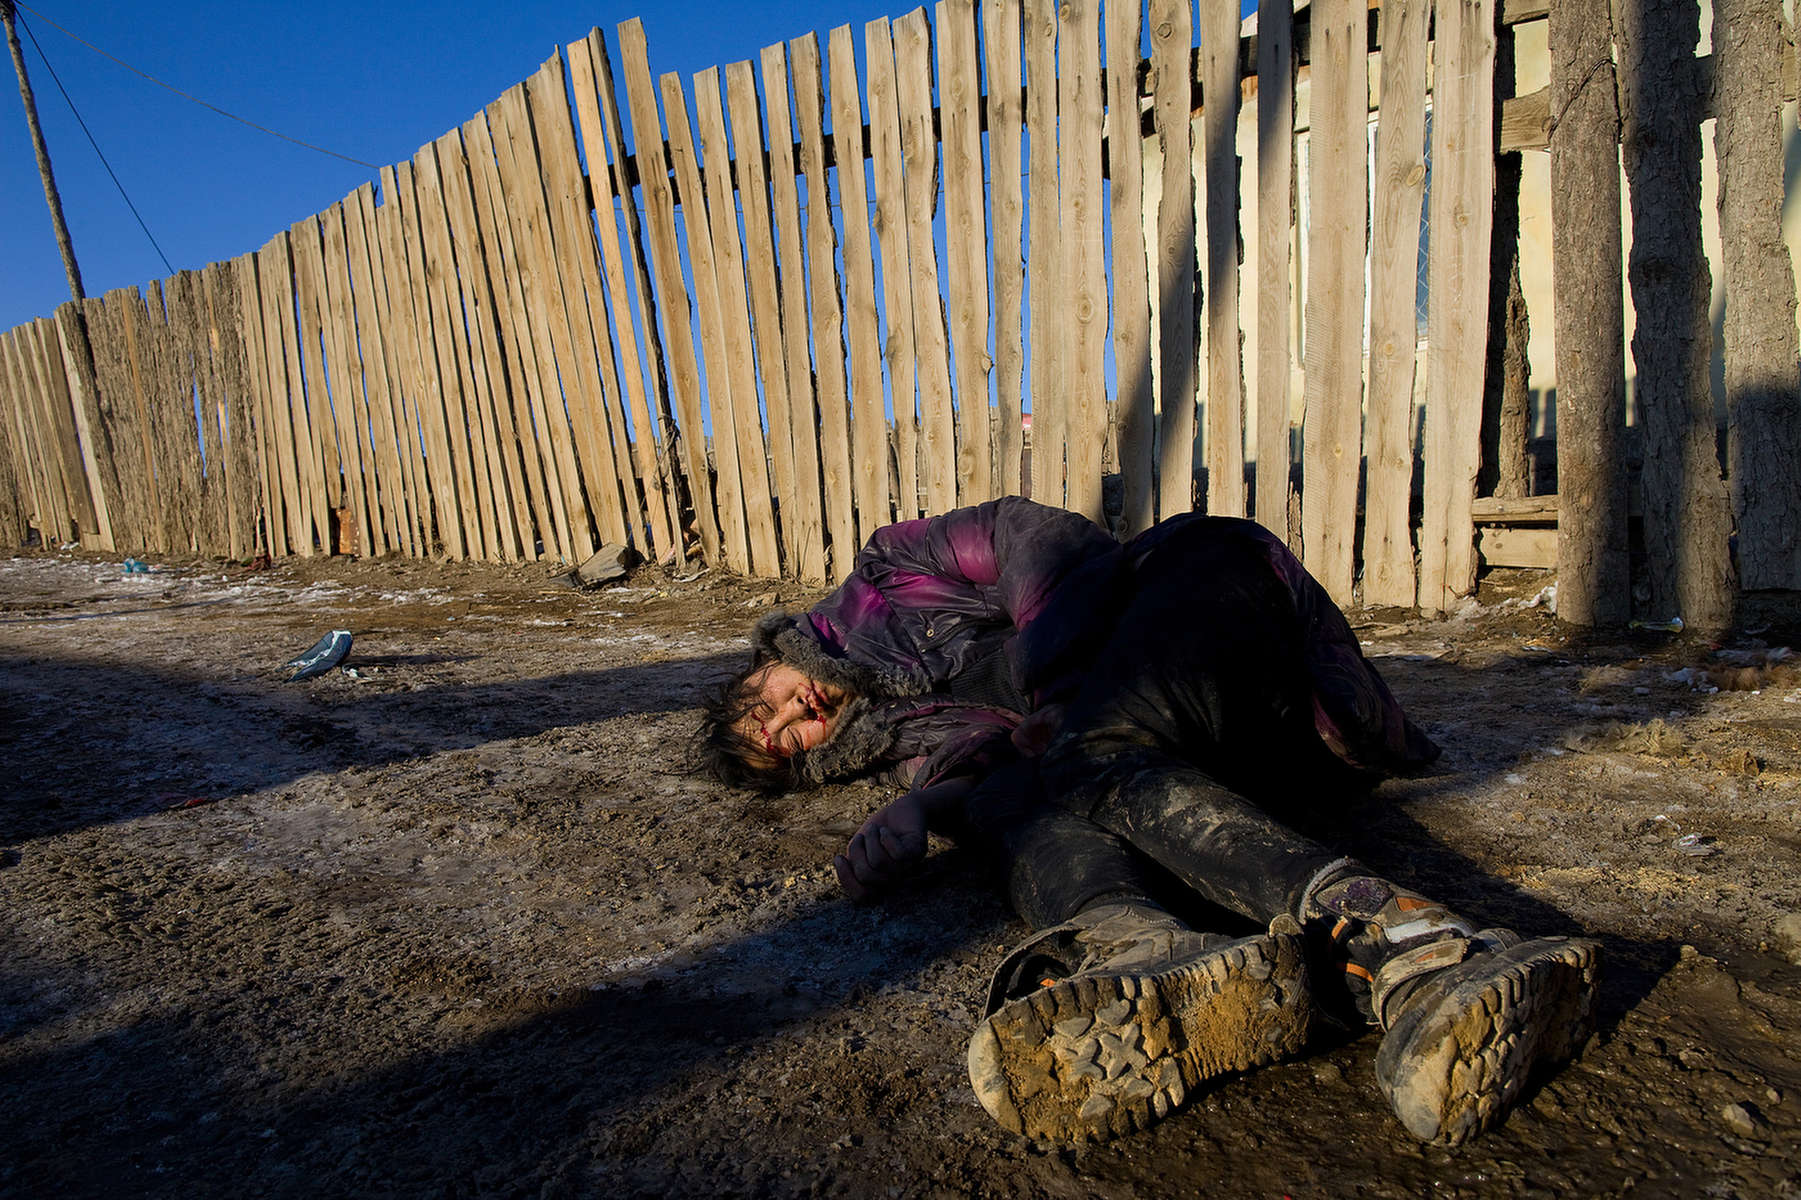 A drunk woman, who fell and hit her head is left without any help,  passed out along the street  March 16, 2010  in Ulaan Baatar, Mongolia. Mongolia suffers with a very high number of alcoholics, all consuming cheap Mongolian vodka that is readily available to the poor and the unemployed, The problem is severe causing the number of street children to rise,  fleeing their abusive, dysfunctional homes. During the winter this means extreme hardship, for the homeless with temperatures dropping as low as -25C mid- Winter. This year Mongolia has experienced  extreme cold and snow during the worst winter in 30 years. Presently the government has declared an emergency requiring foreign aid to alleviate the impact of the {quote} Zud{quote} ( Mongolian term for a multiple natural disaster) caused by bitter cold and thick snow. Currently 1.5 mgoats, 921,000 sheep, 169,000 cows and yaks, 89,000 horses and 1,500 camels had died according to the various UN agency reports. Many Mongolians have immigrated to the capitol city from the far away provinces seeking employment, living in rented traditional circular felt yurts with no running water or electricity.(Photo by Paula Bronstein /Getty Images)